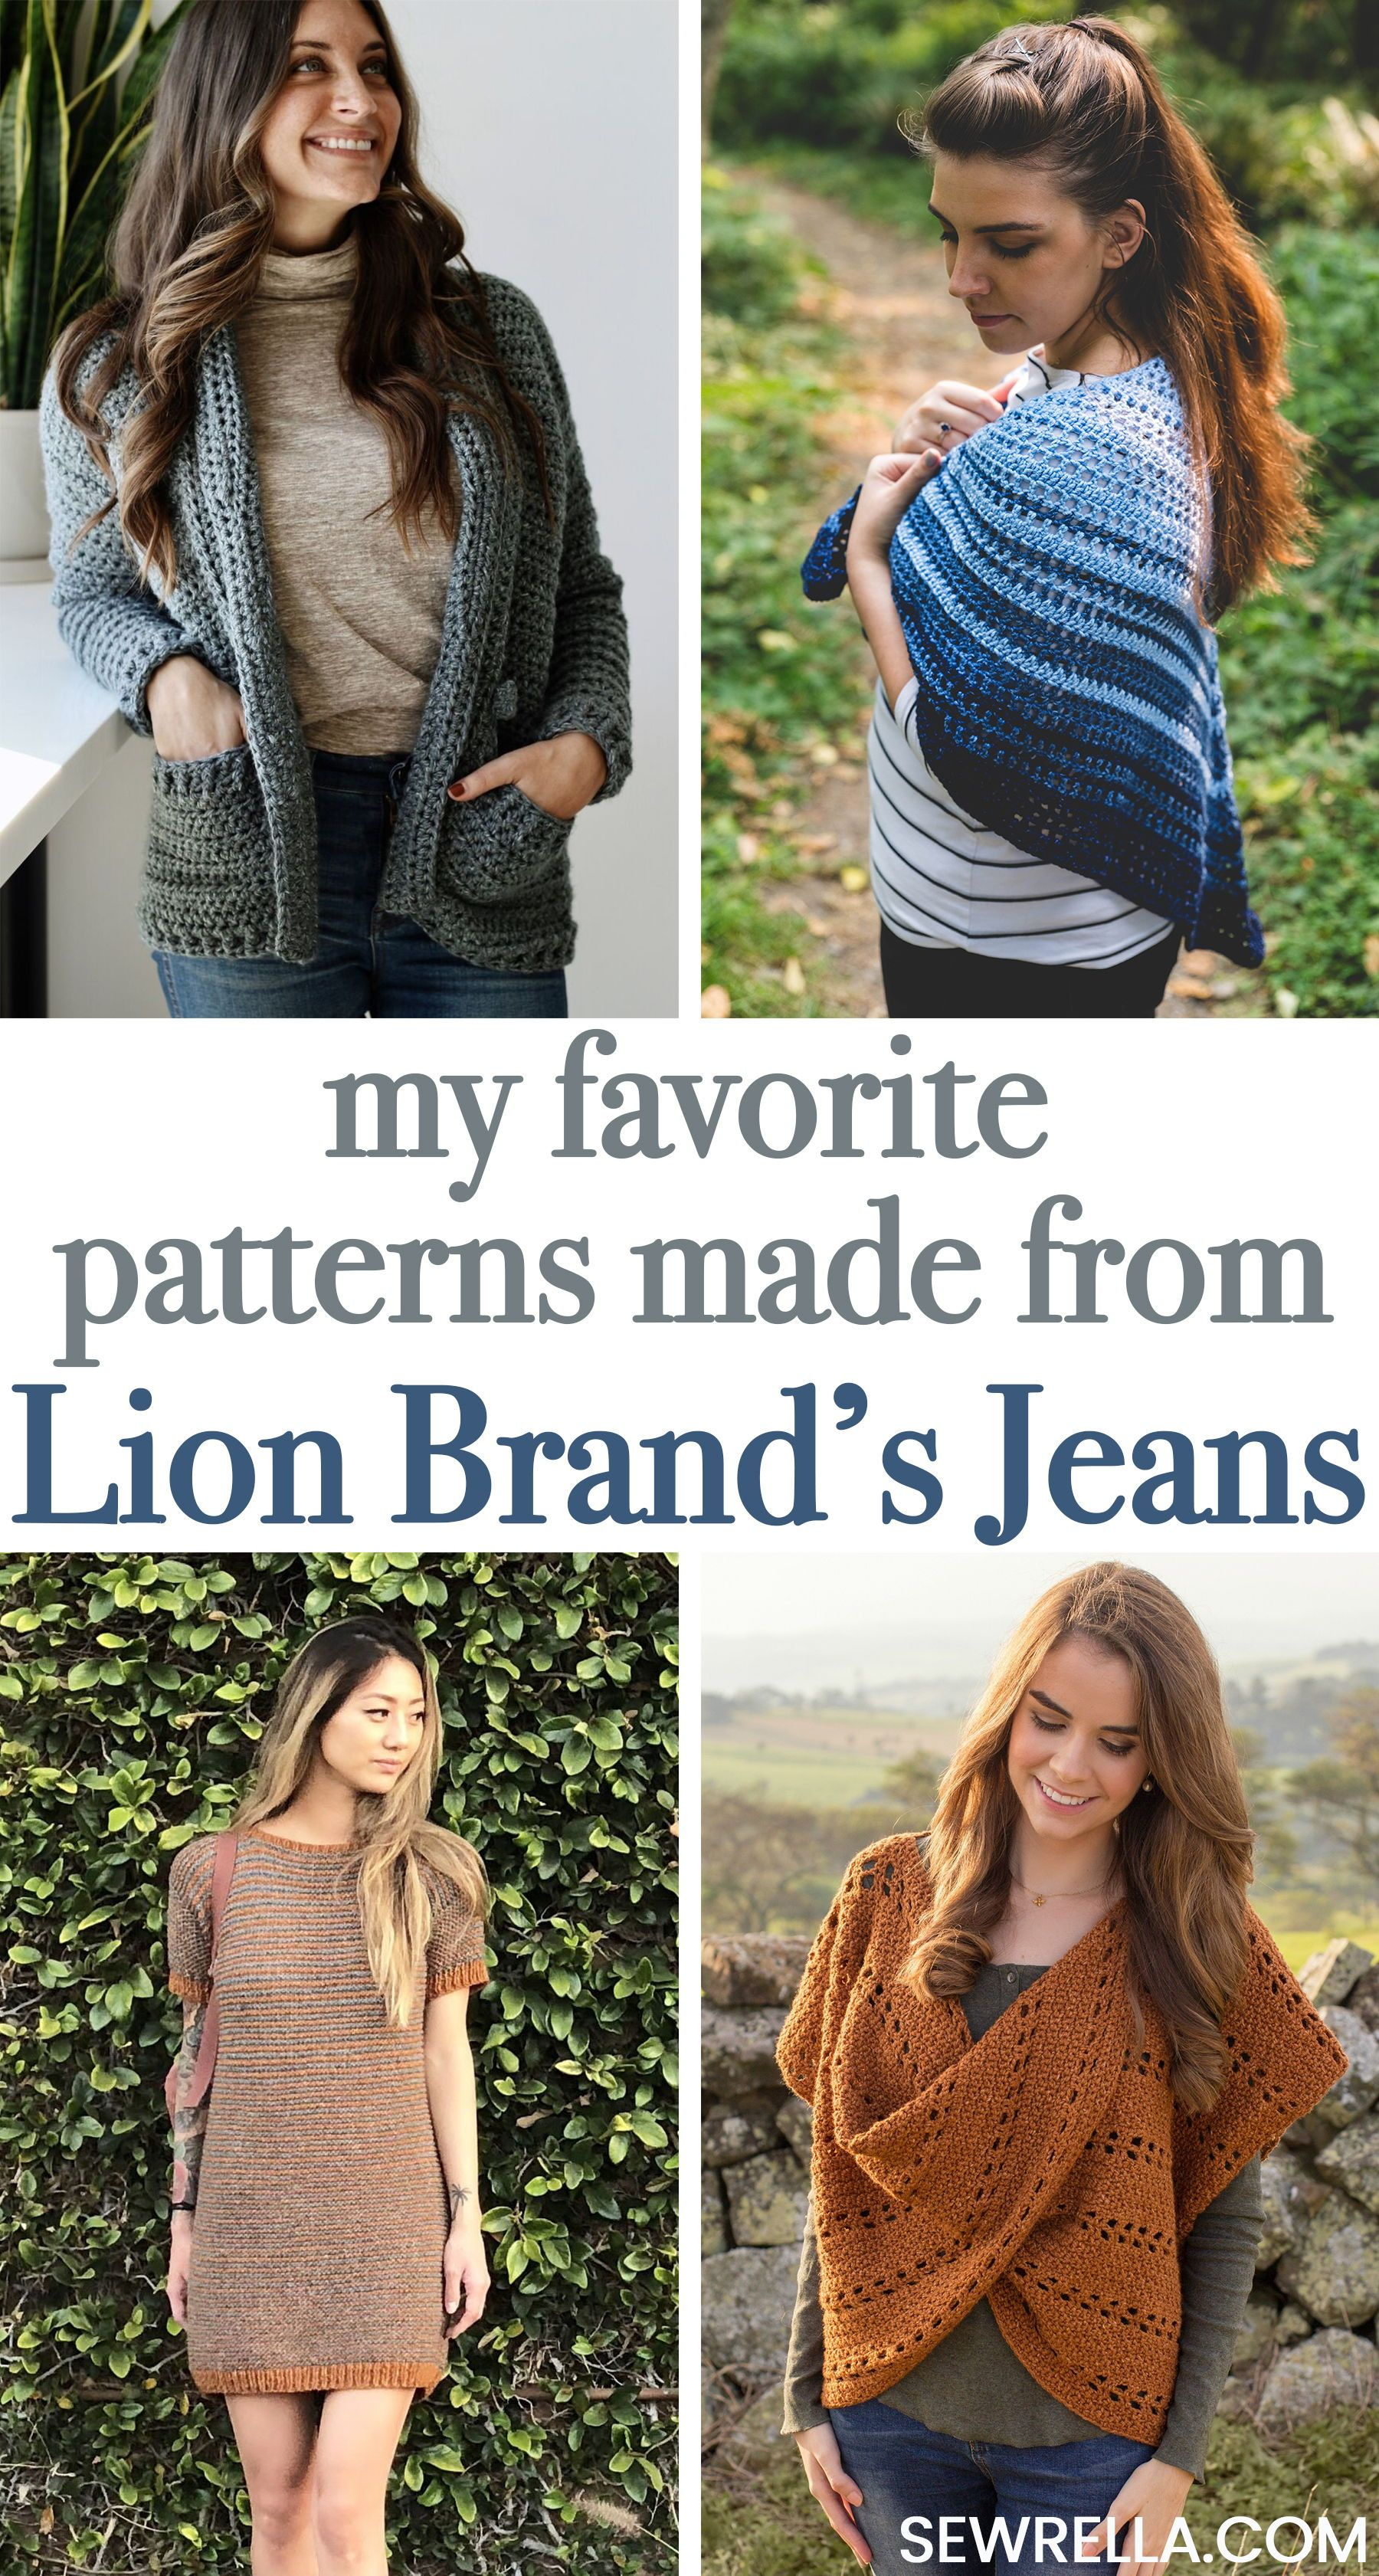 The Best Crochet Knit Patterns Made With Jeans Yarn Yarn Thread